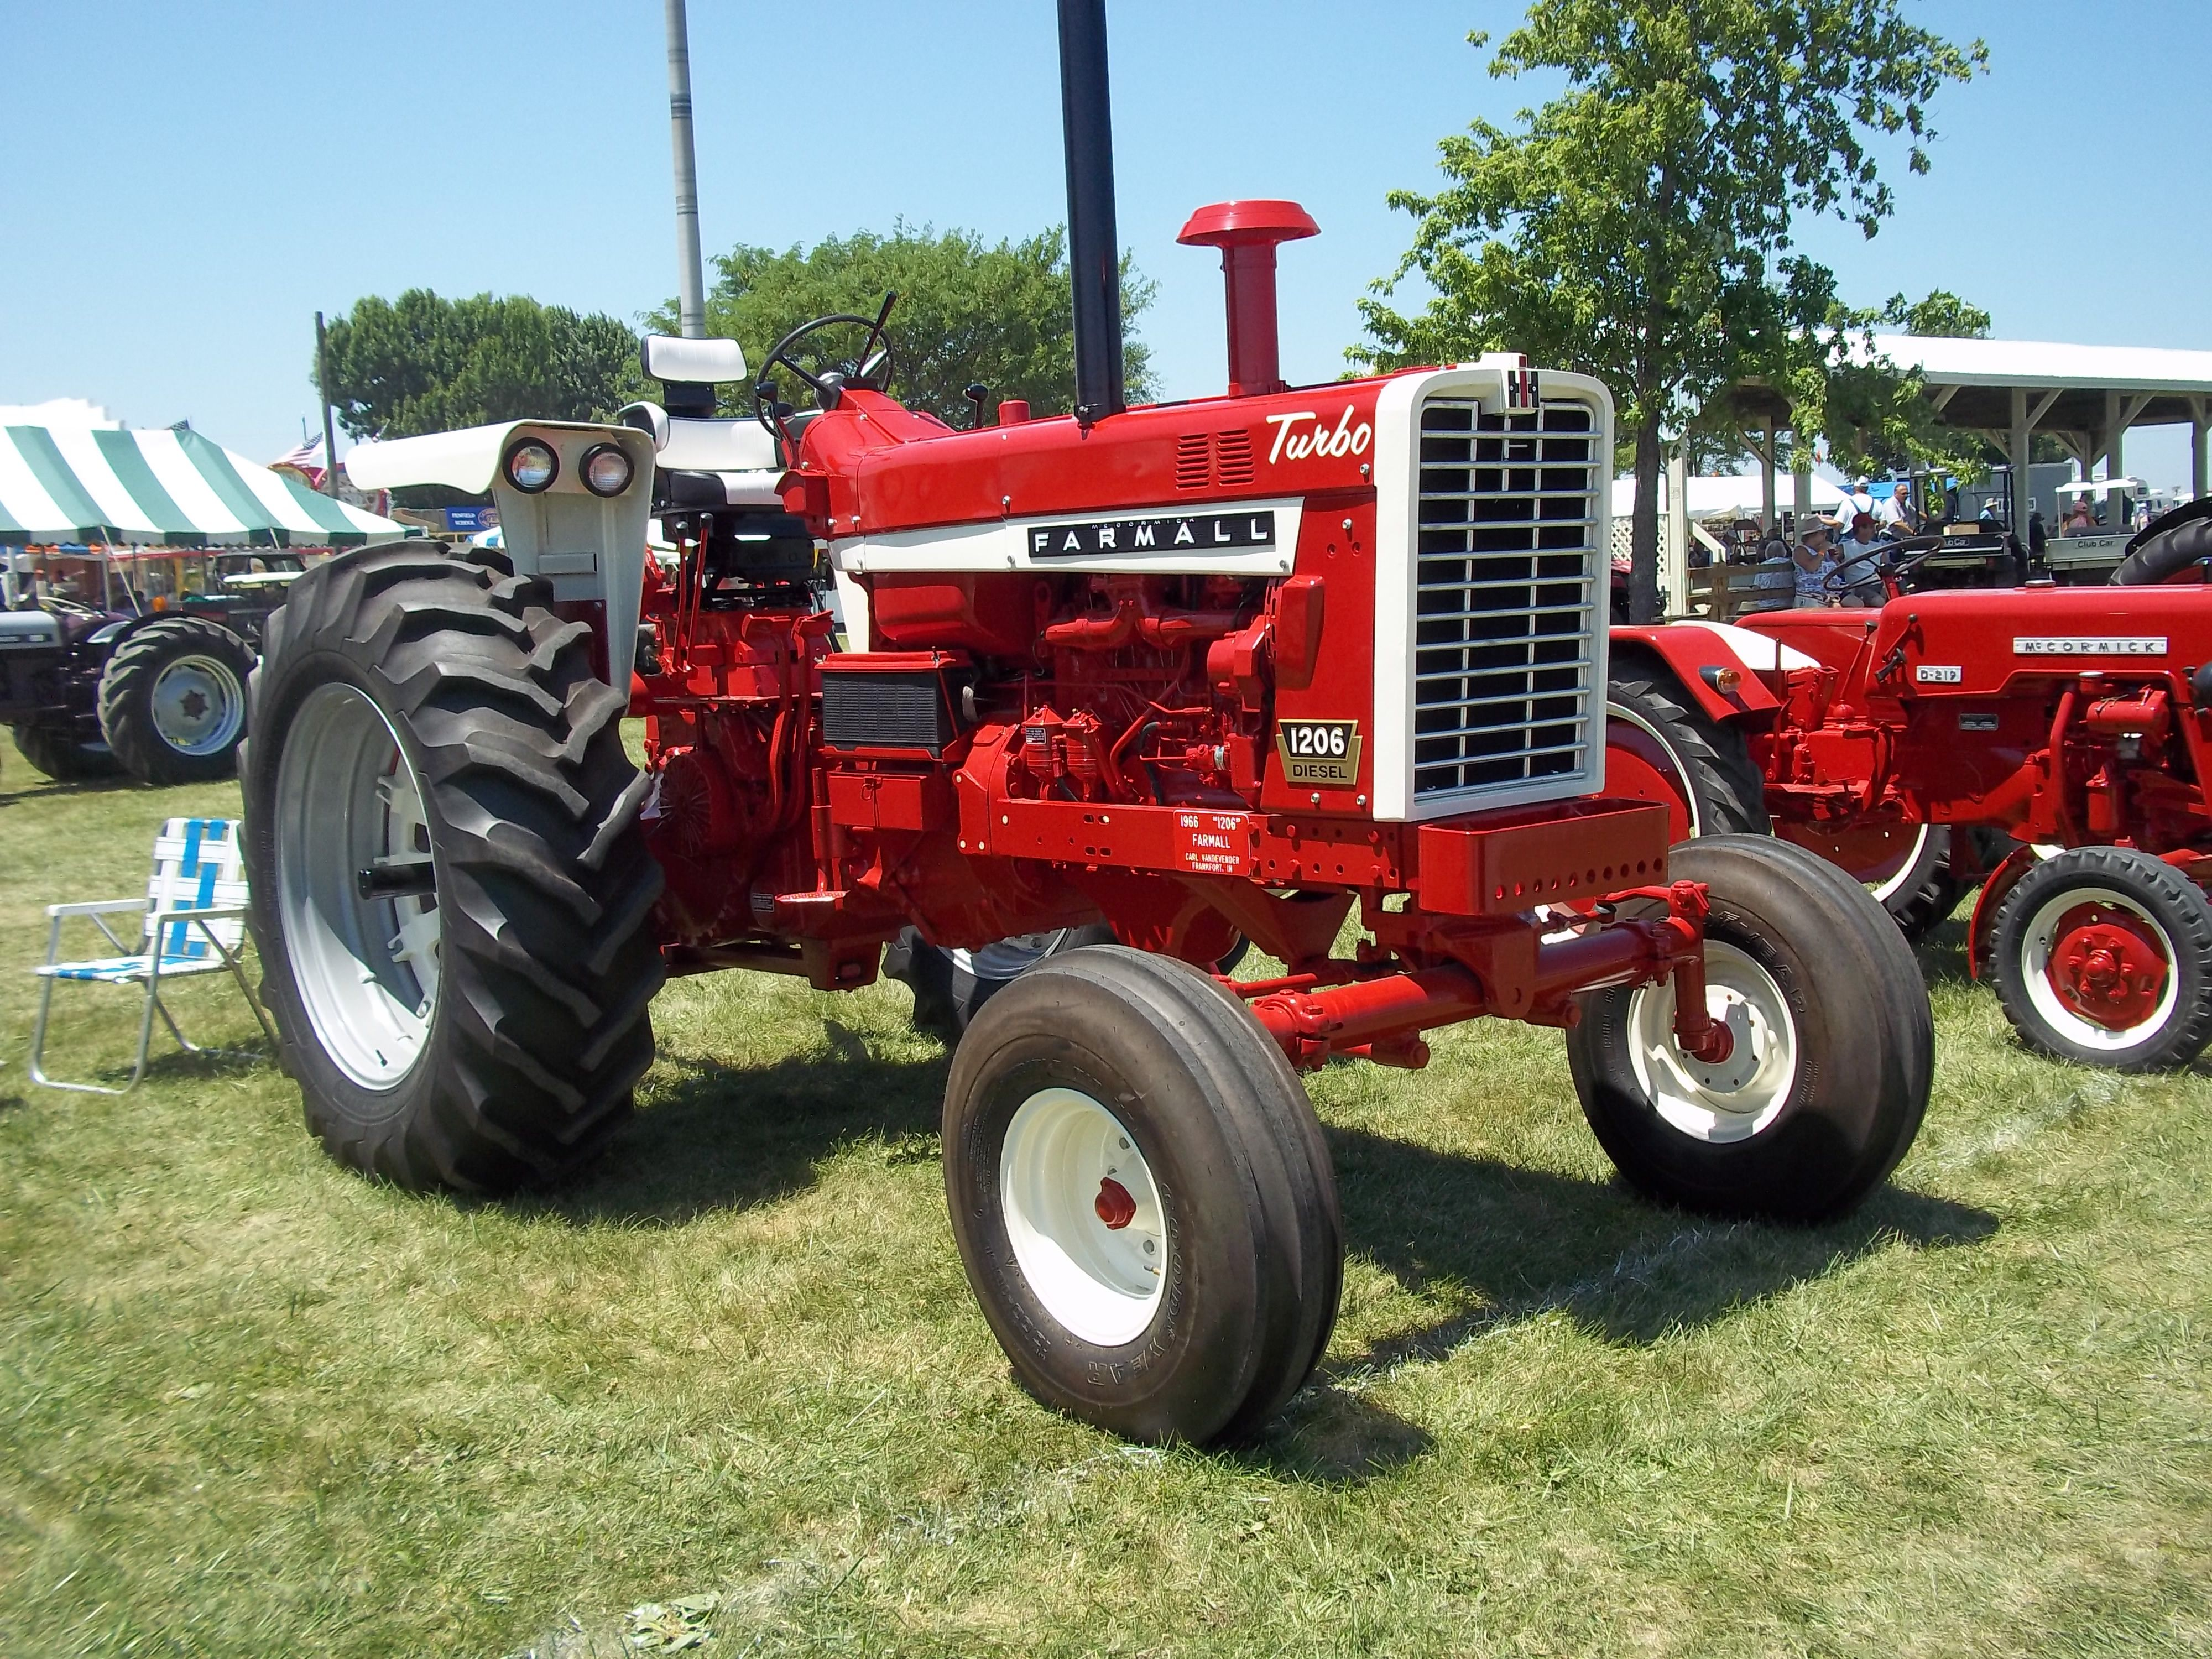 112hp Farmall 1206 It is rumored this was the most powerful